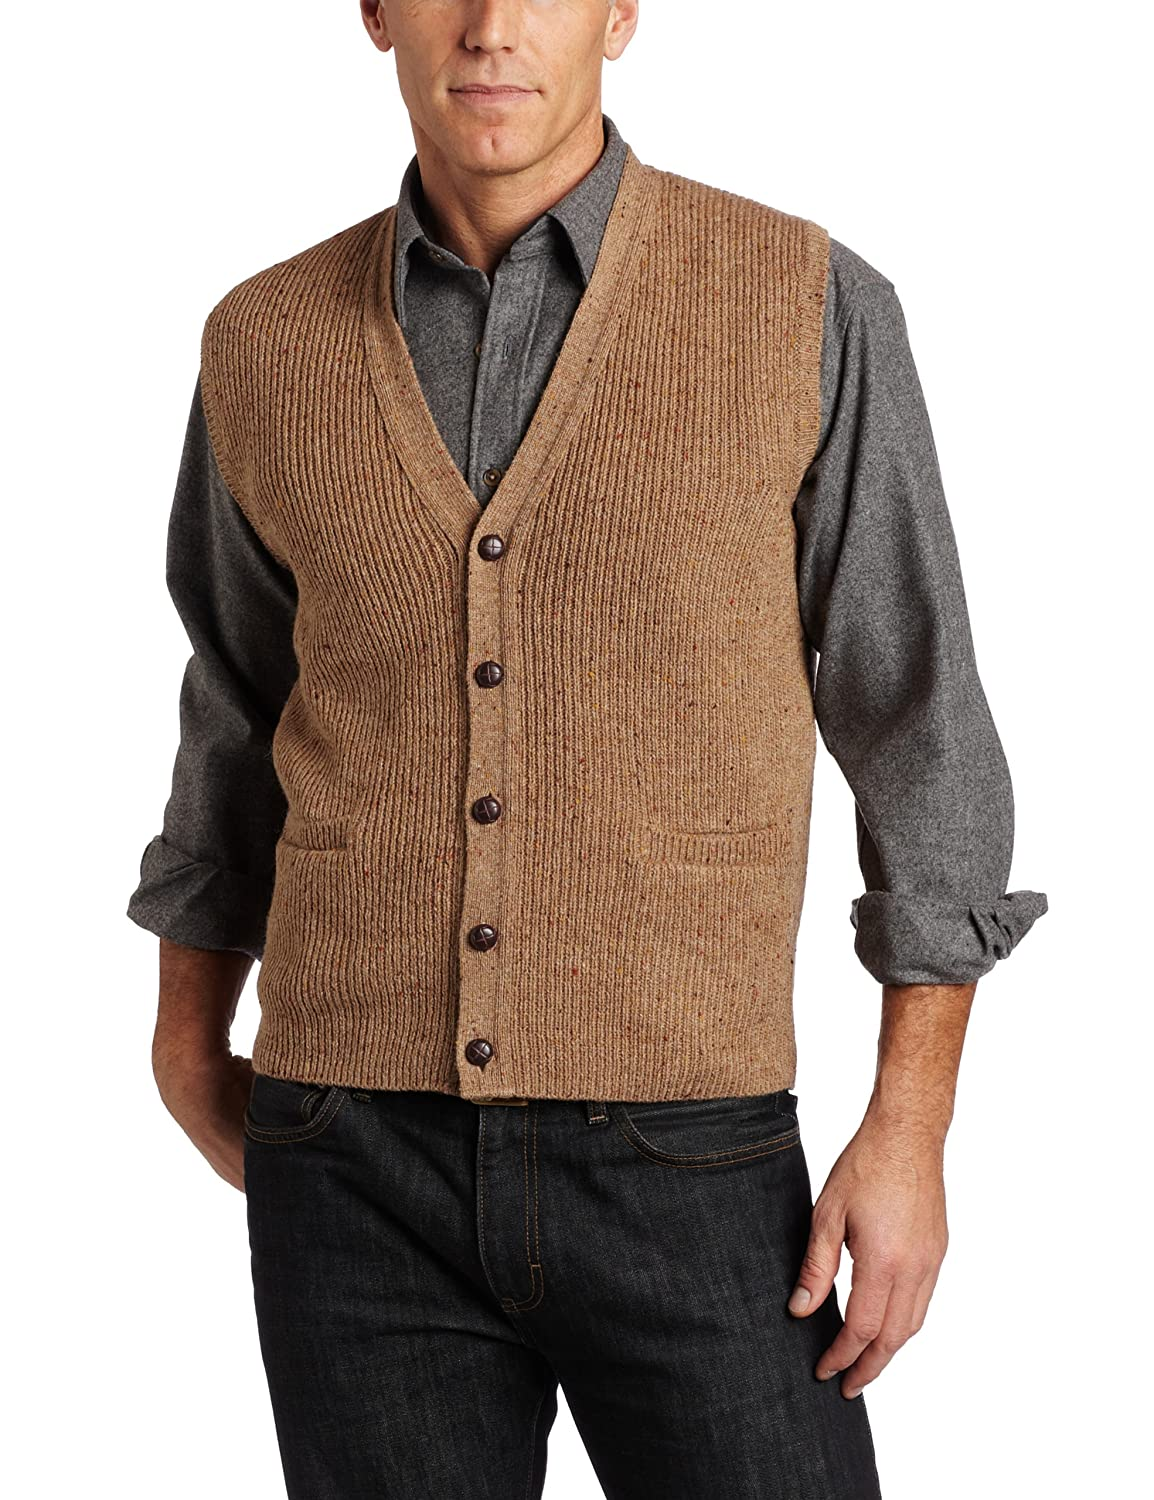 1950s Men's Clothing Pendleton Mens Shetland Vest $79.12 AT vintagedancer.com